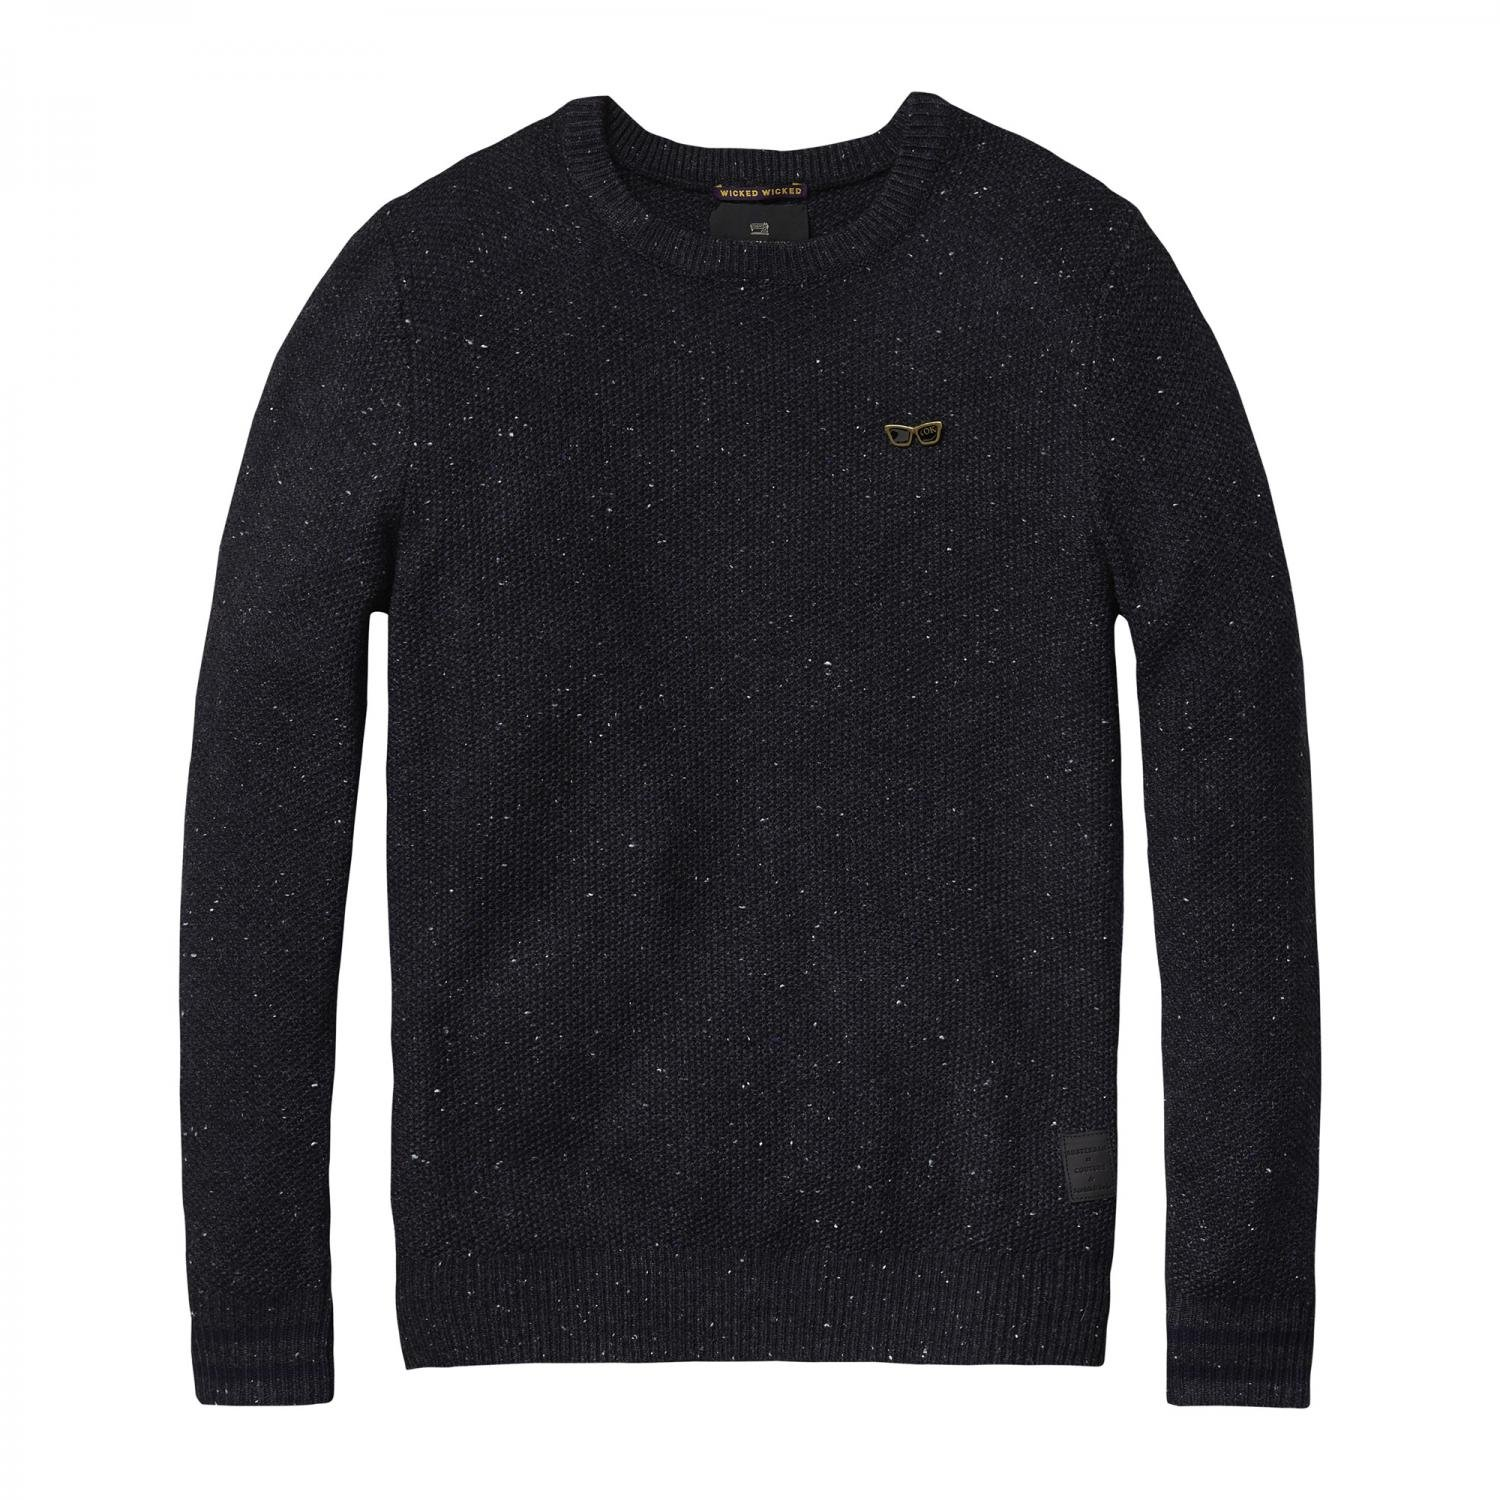 Scotch & Soda Herren Pullover Structure Knitted Pullover 101660 Graphite Melange XL